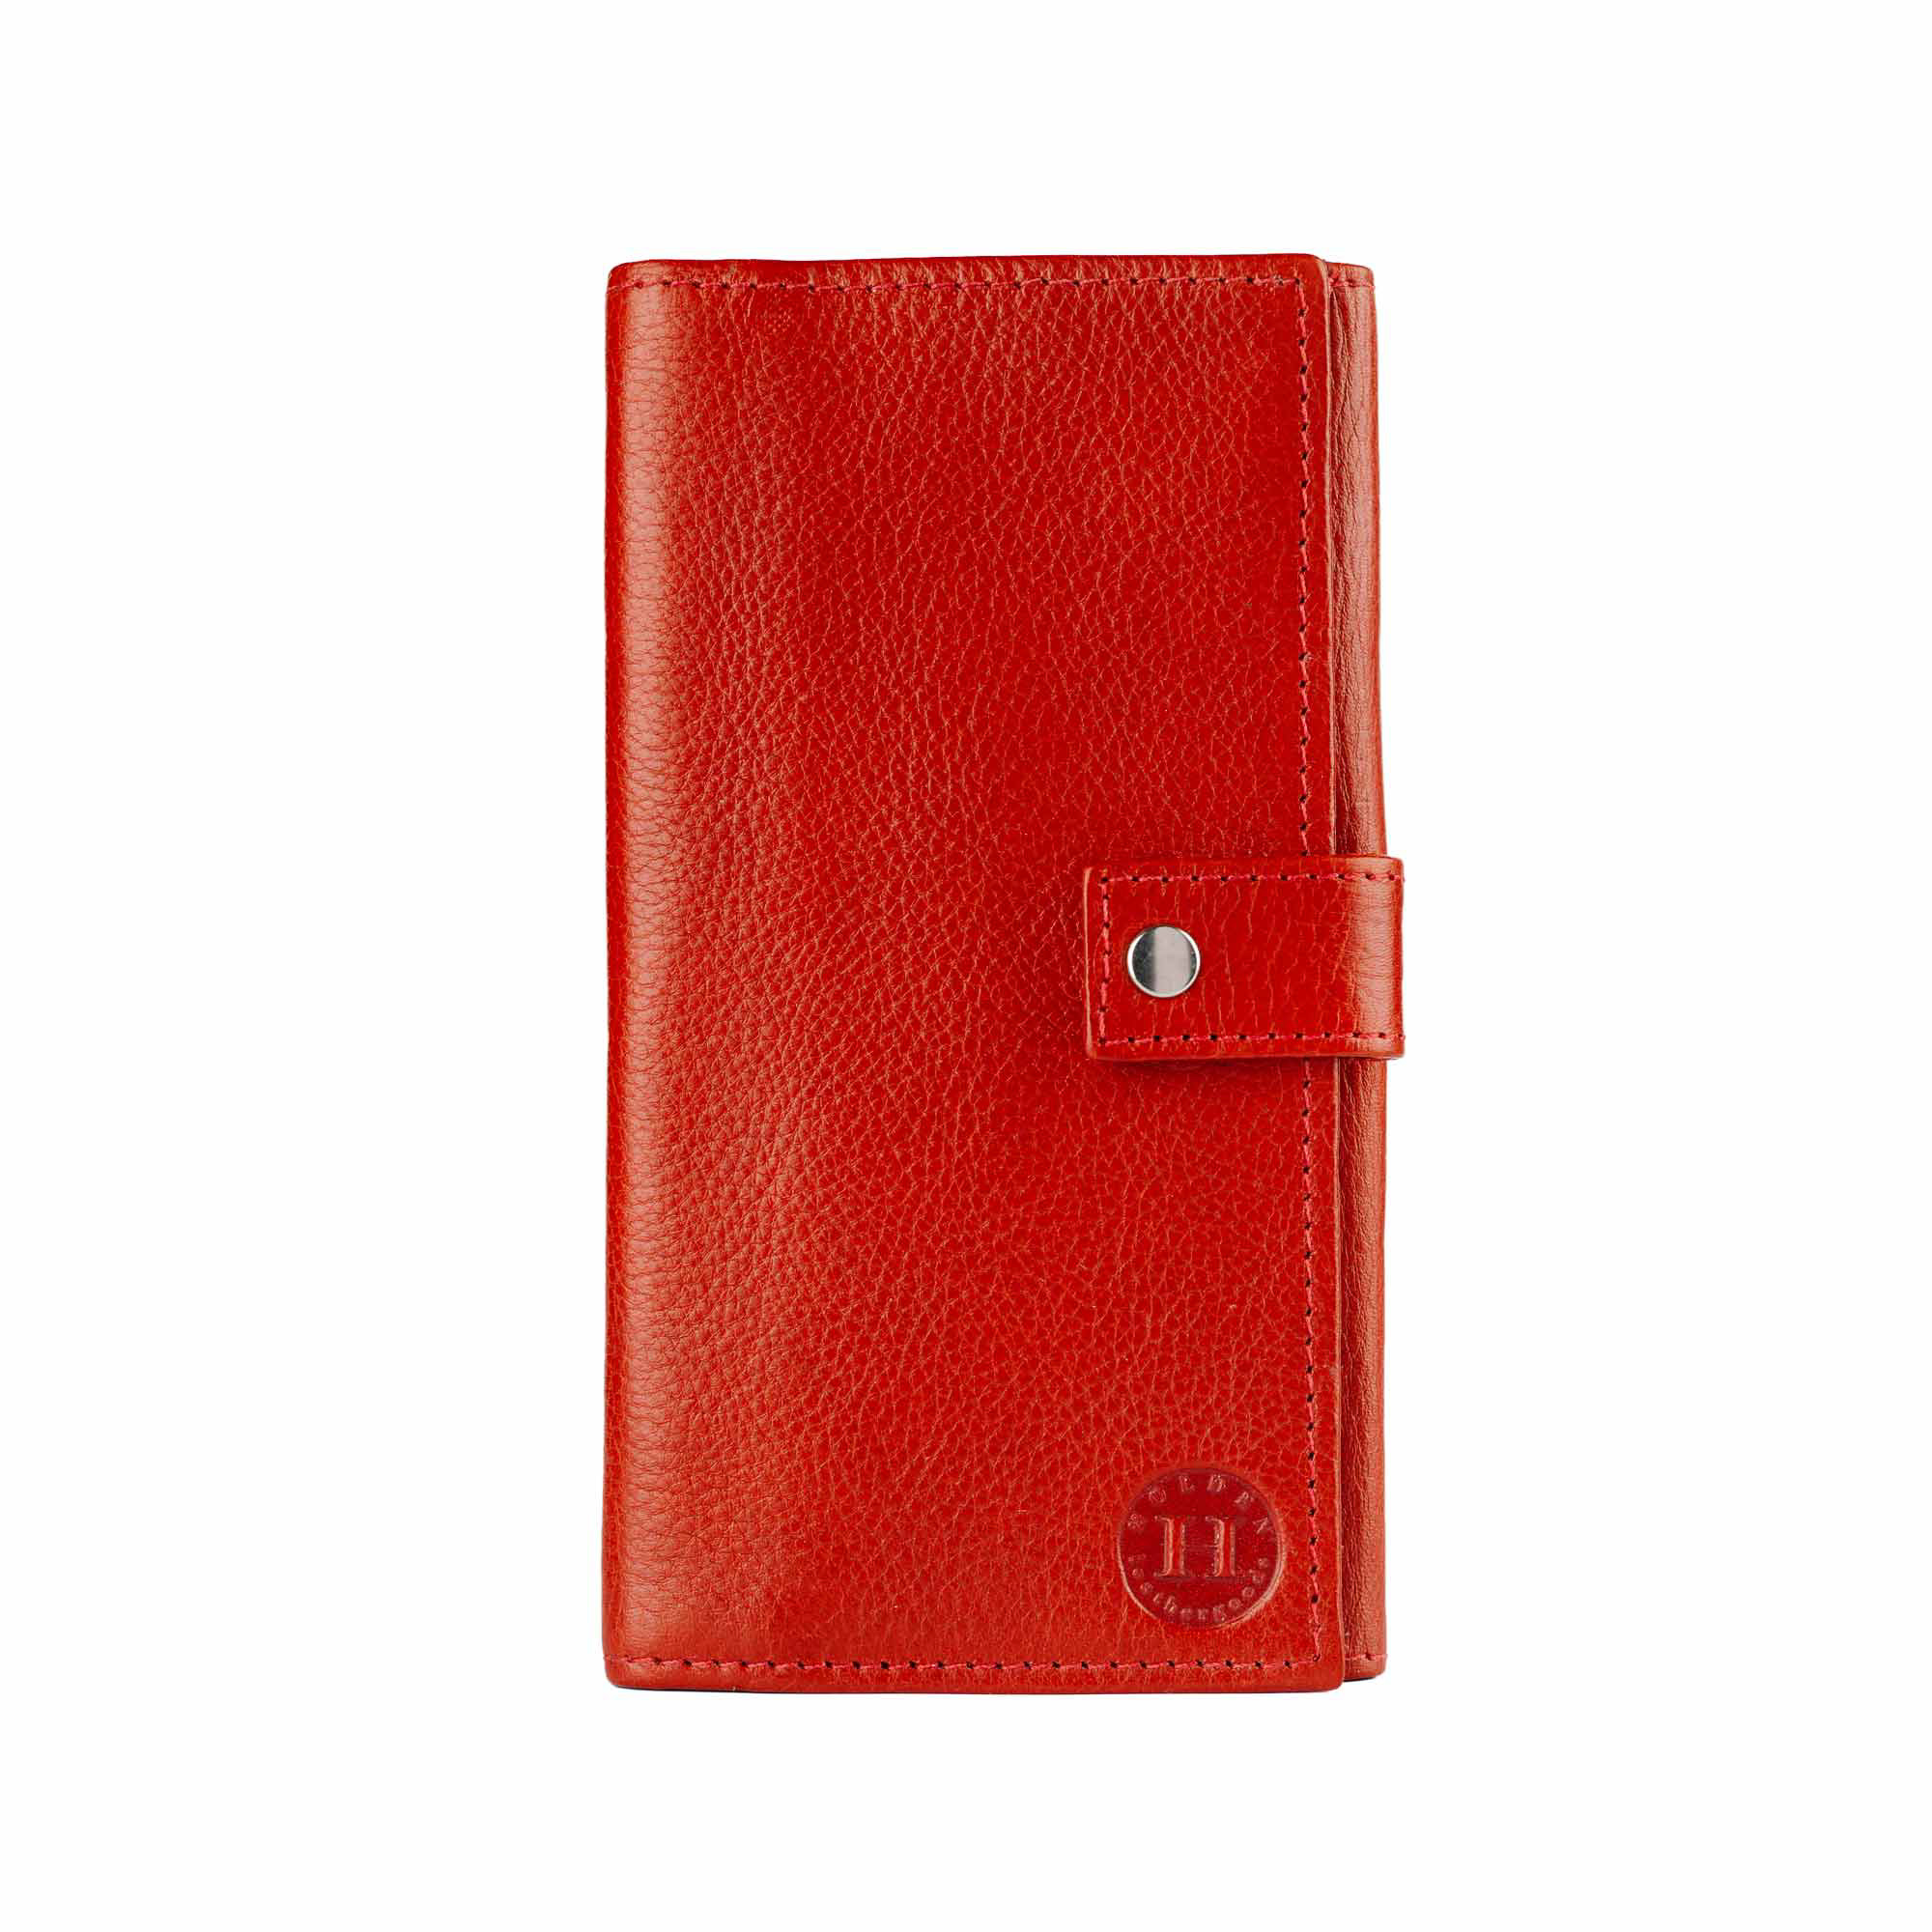 Holden-Ladies-Leather-Wallet-Red QC.jpg